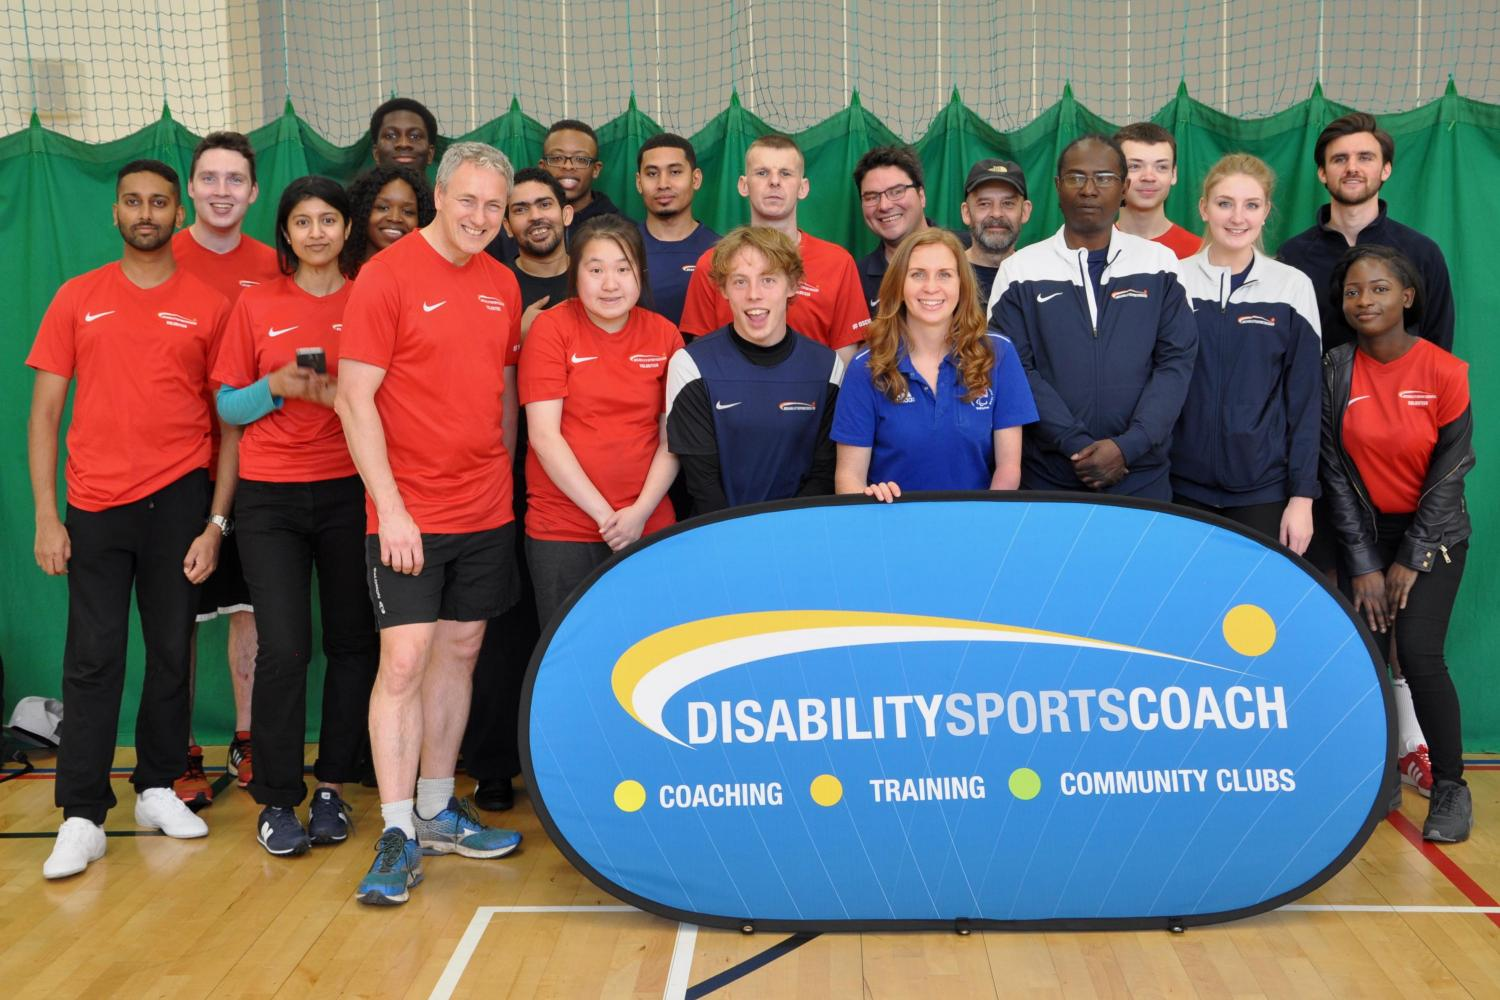 Disability Sports Coach Club Development Manager